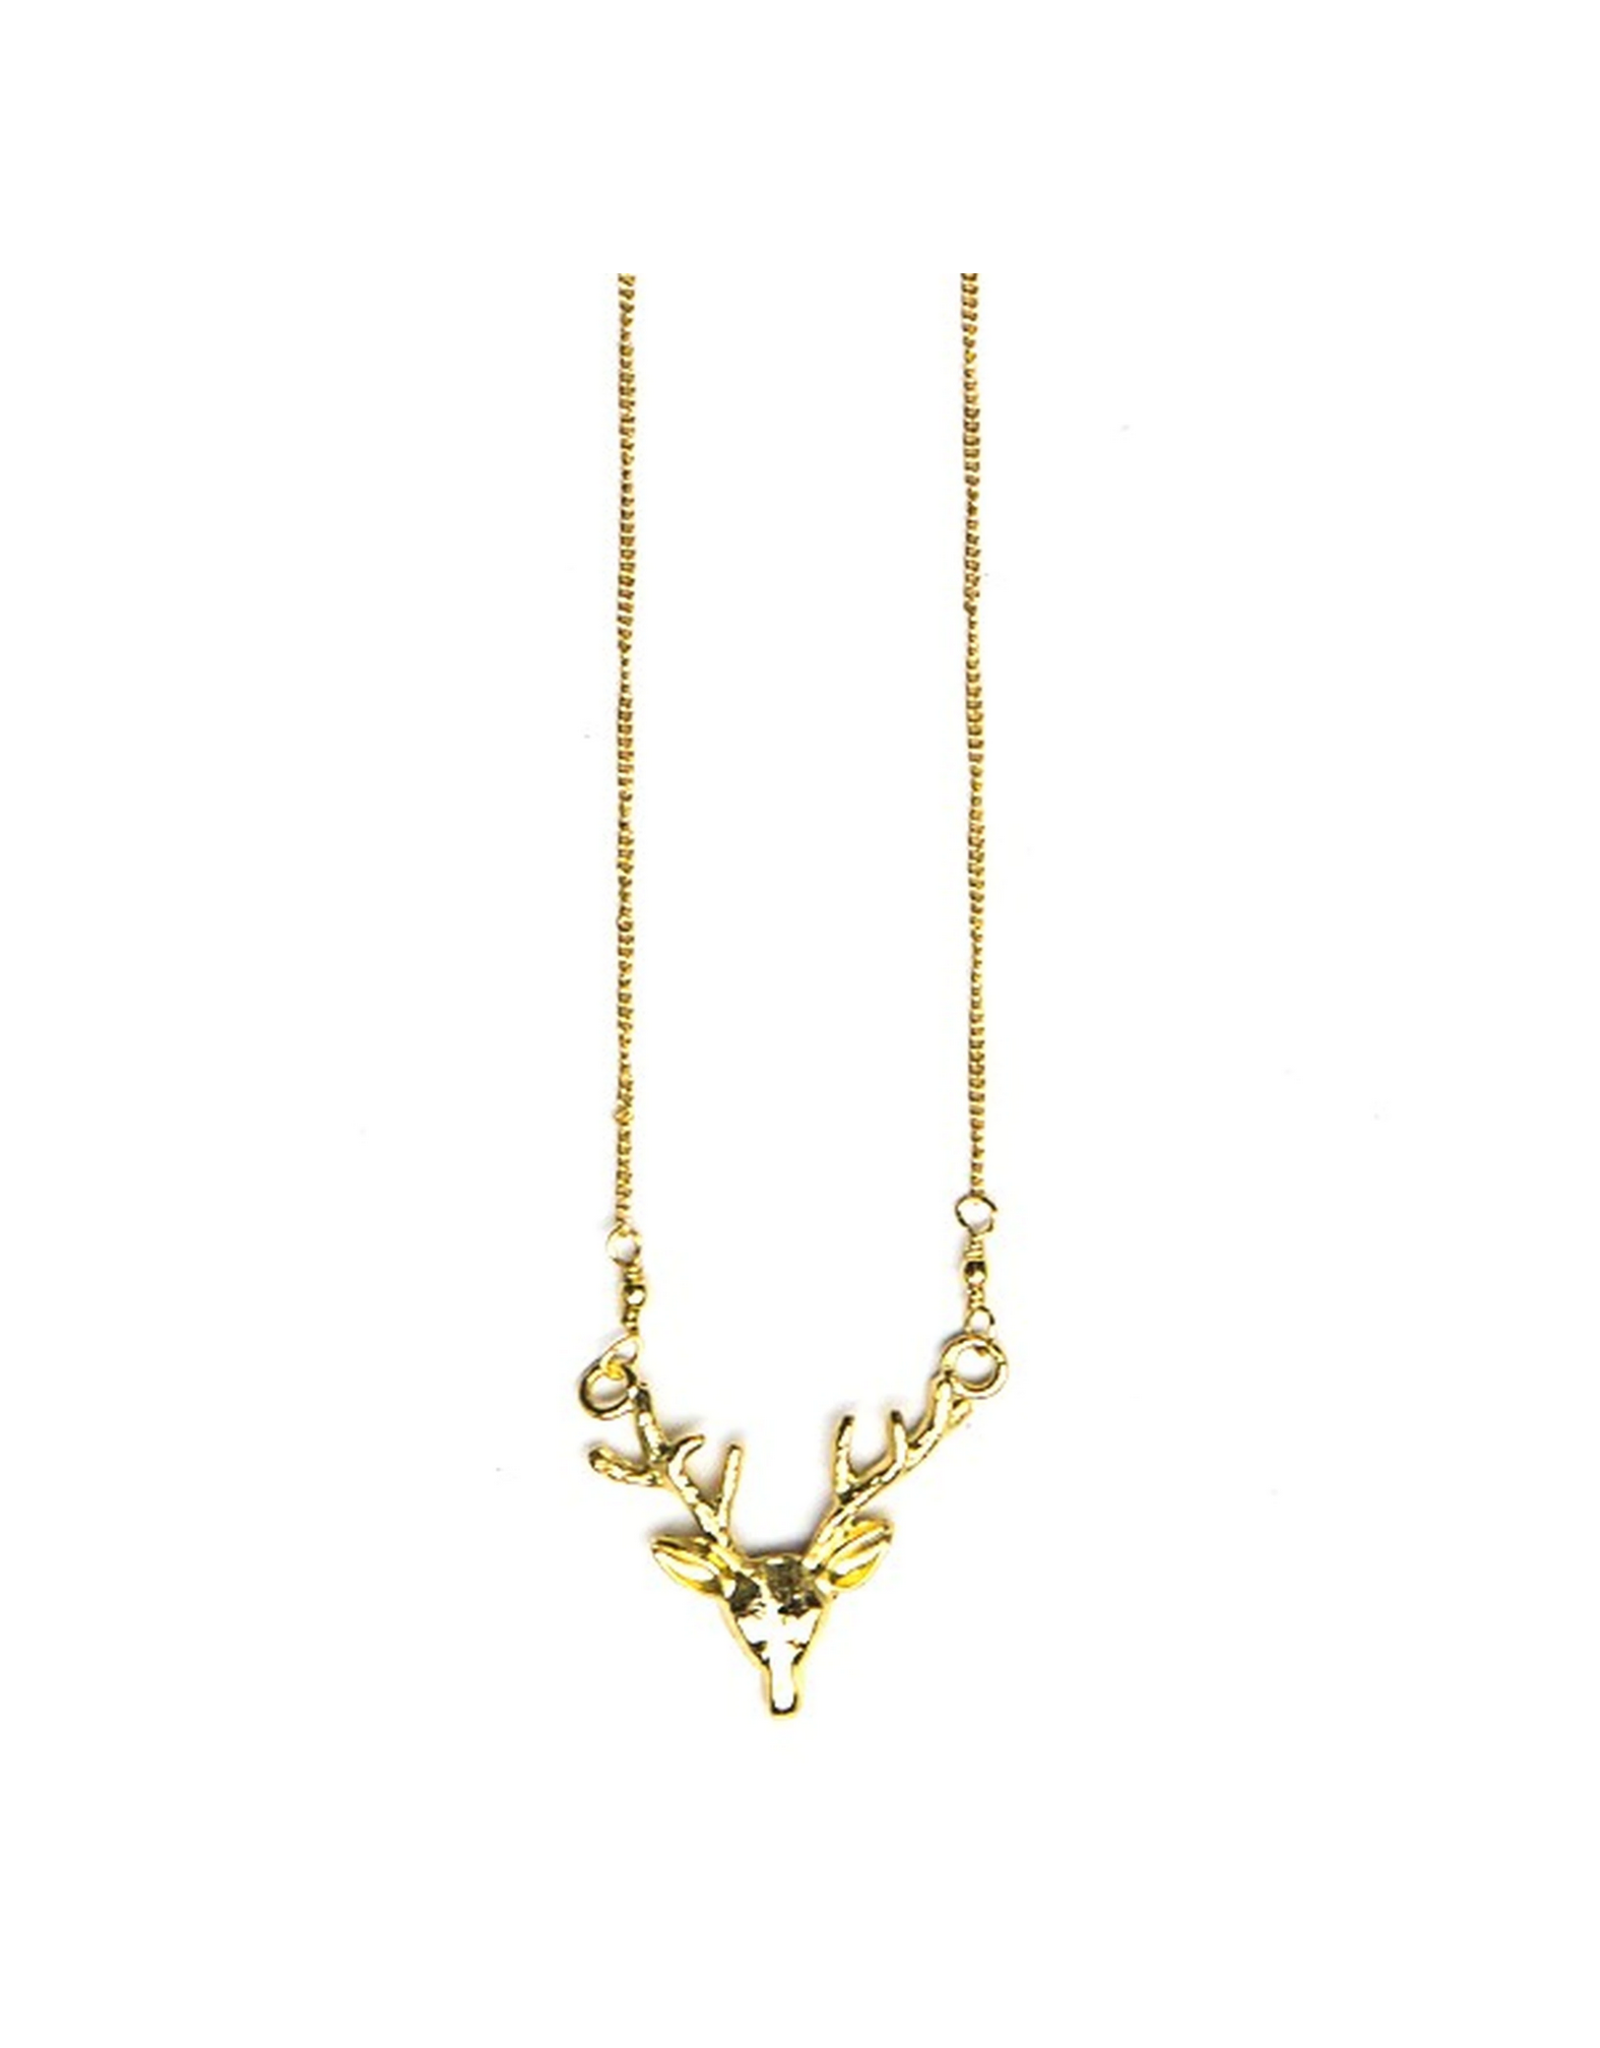 Antlers Necklace (Brass or Silver!)